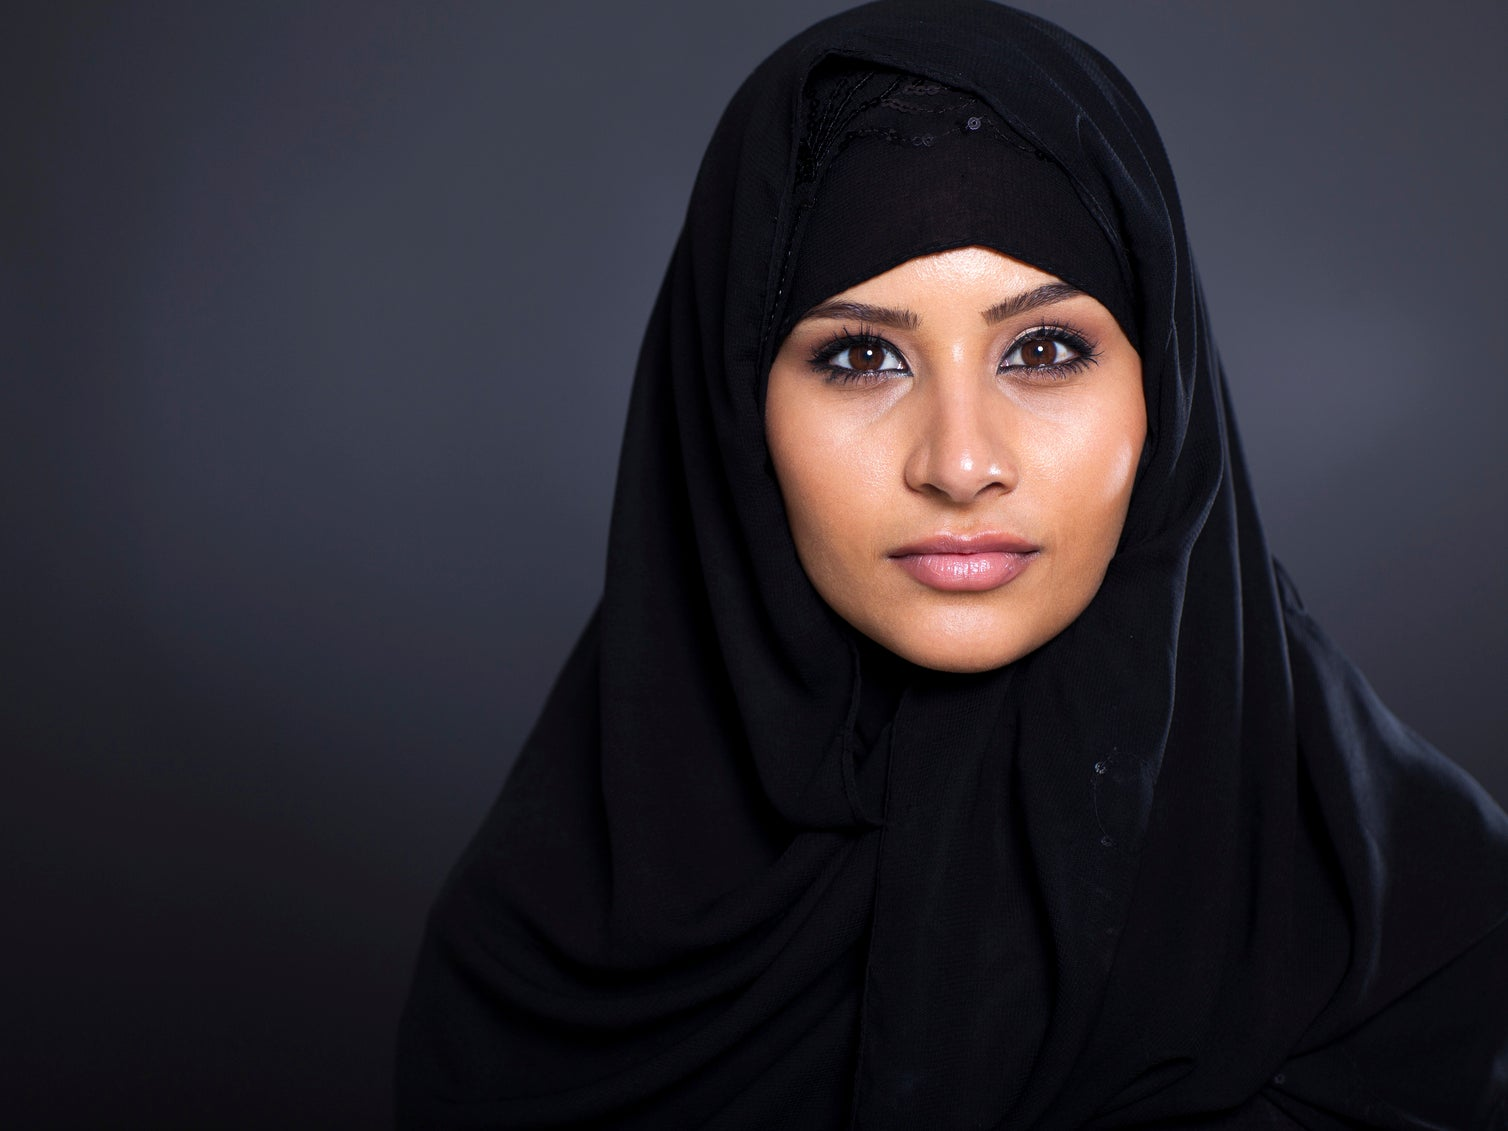 north freedom muslim women dating site Find a date today at idating4youcom local dating site register now, use it for free for speed dating register & view profiles  muslim pacific islander woman.